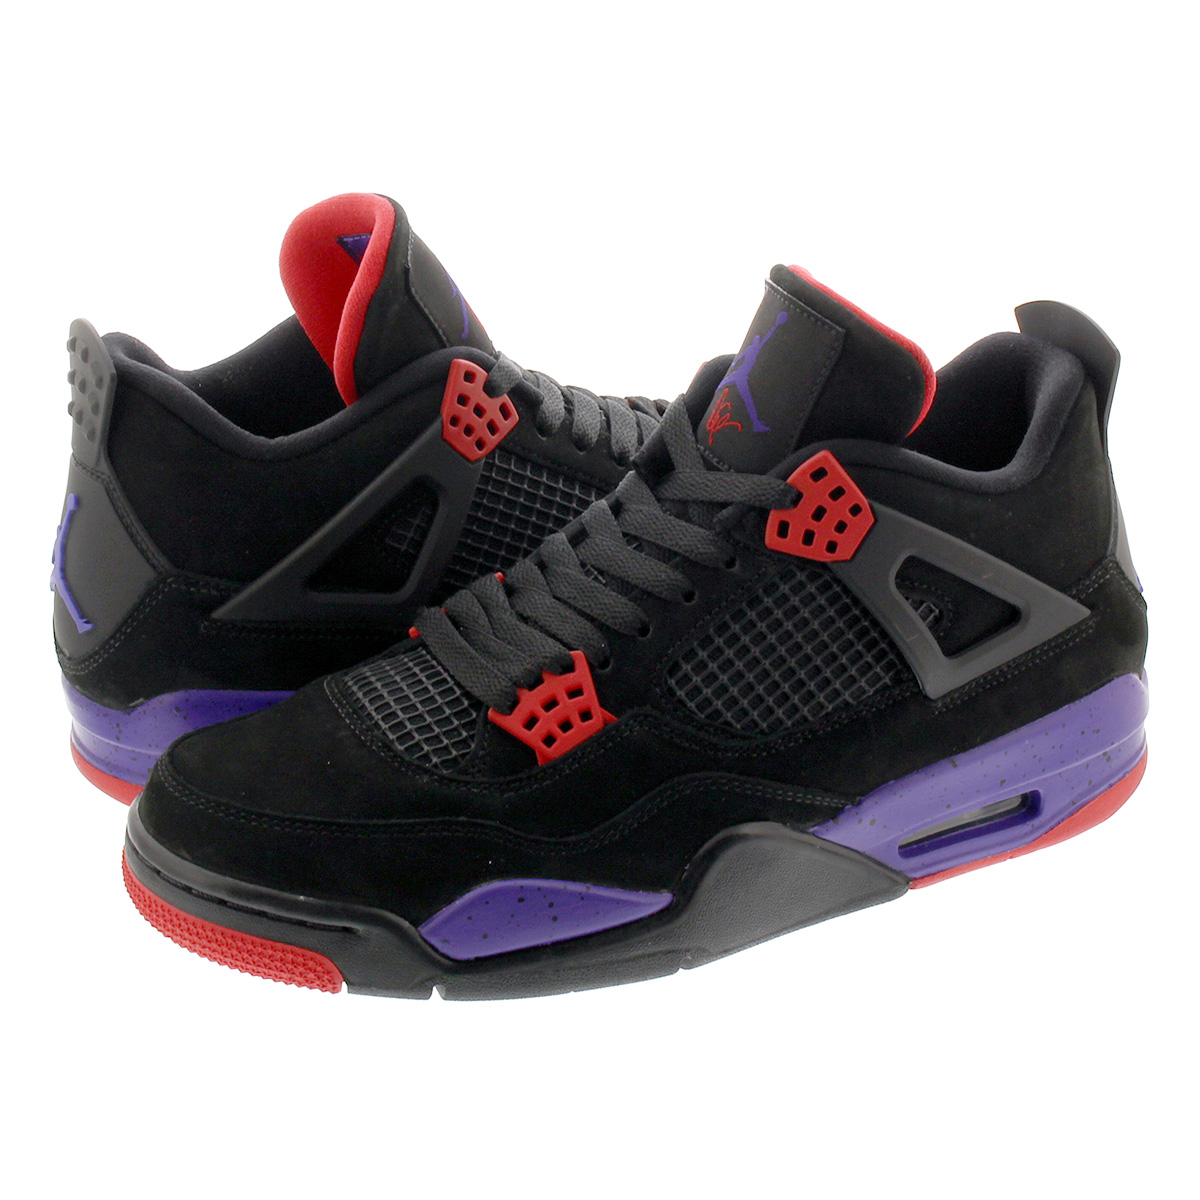 separation shoes 9fbb4 c6b5a NIKE AIR JORDAN 4 RETRO Nike Air Jordan 4 nostalgic NRG BLACK/PURPLE/RED  aq3816-065